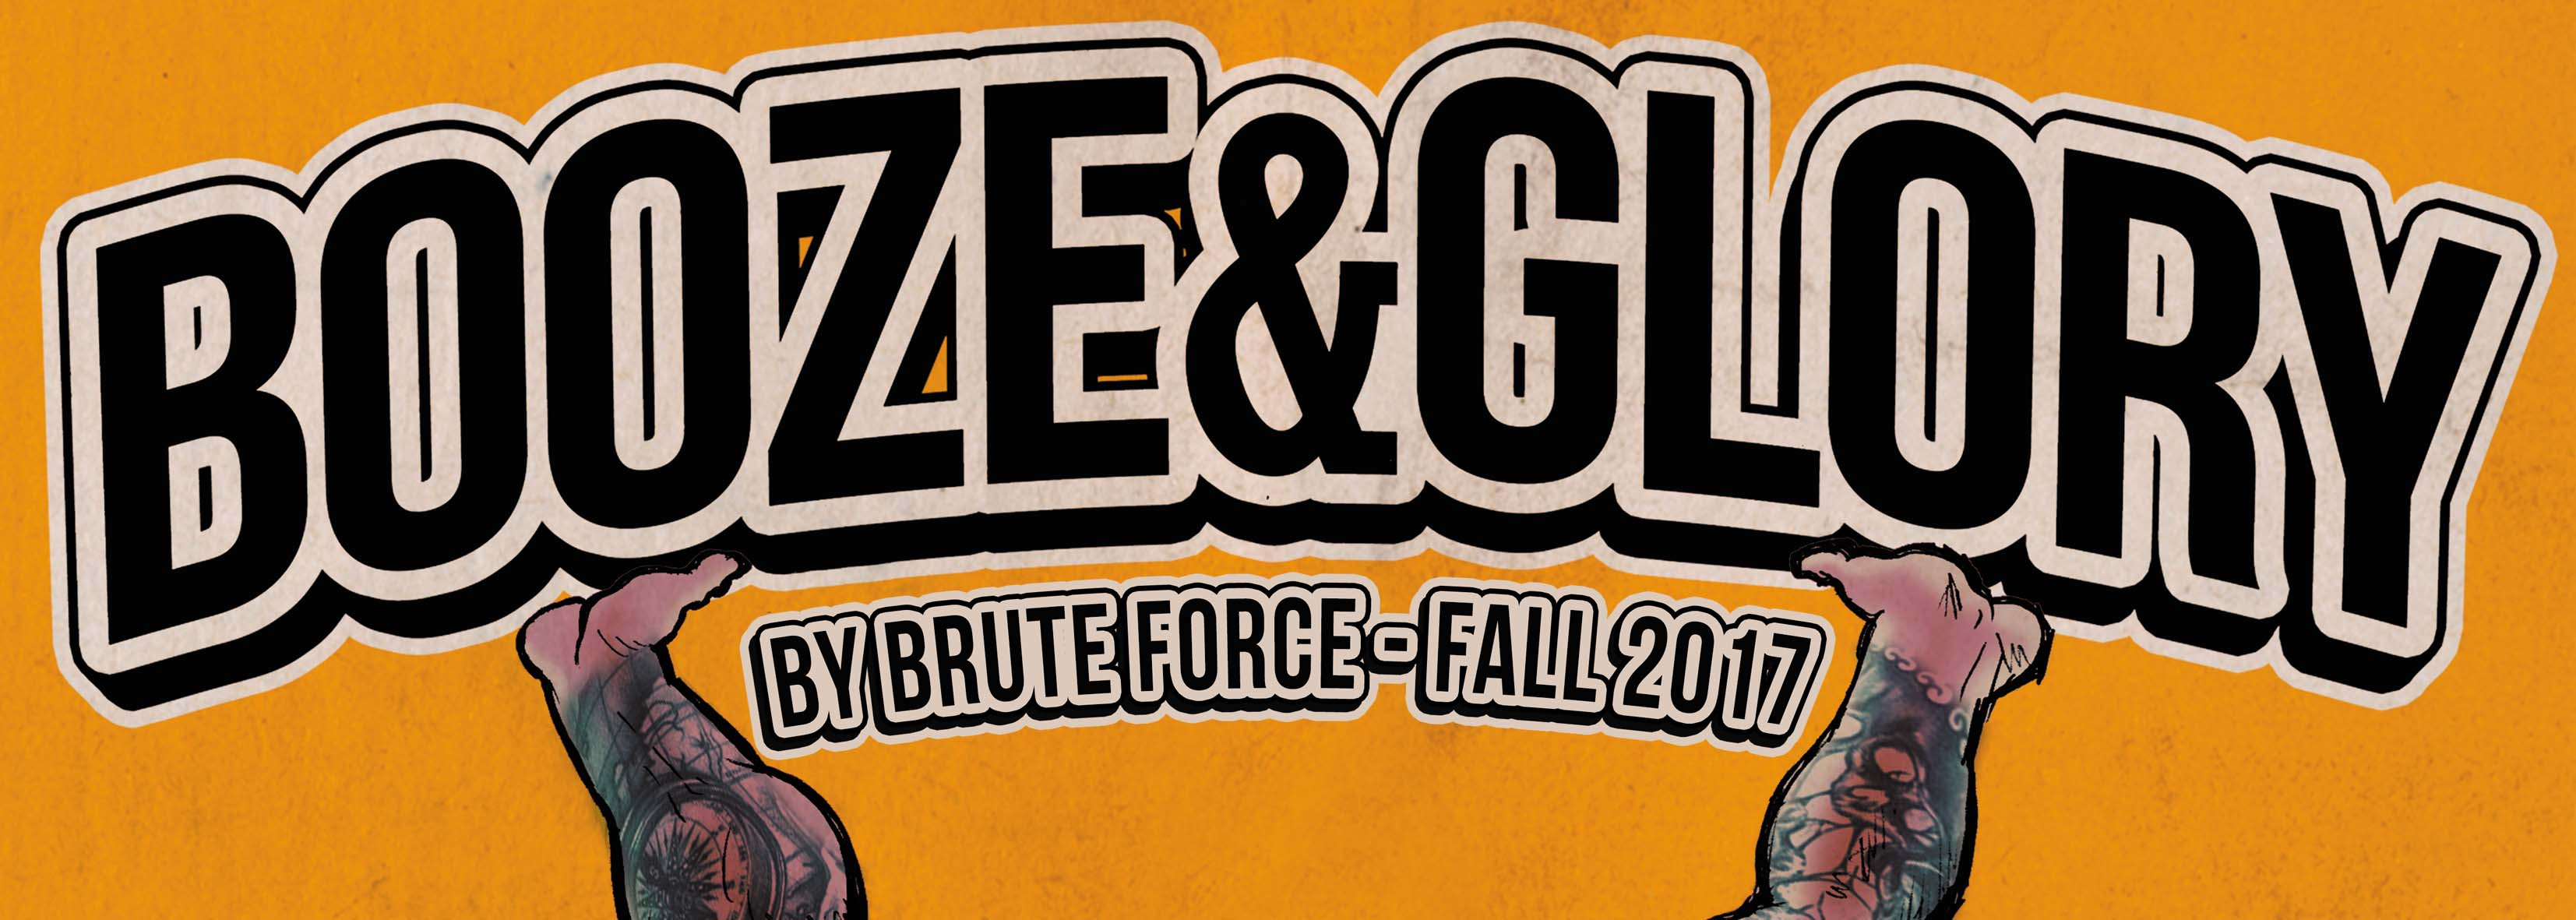 BOOZE & GLORY - BY BRUTE FORCE FALL 2017